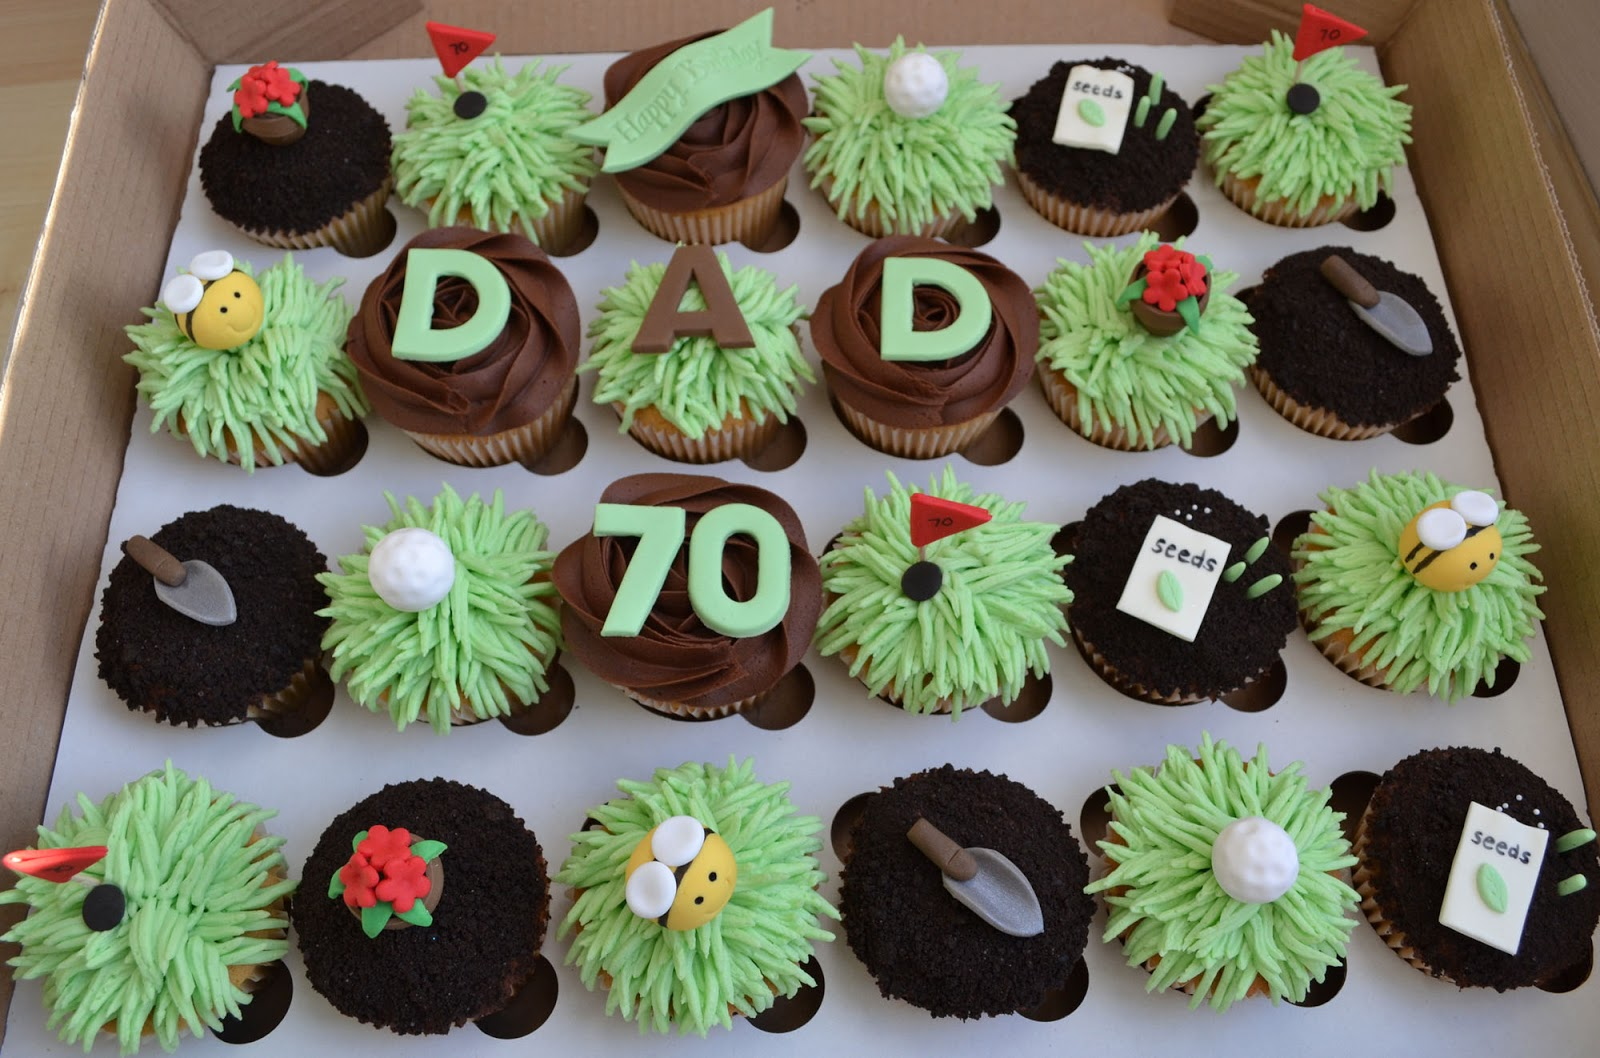 Helen Wanted A Box Of 24 Cupcakes For Her Dads 70th Birthday Hes Fan Golf And